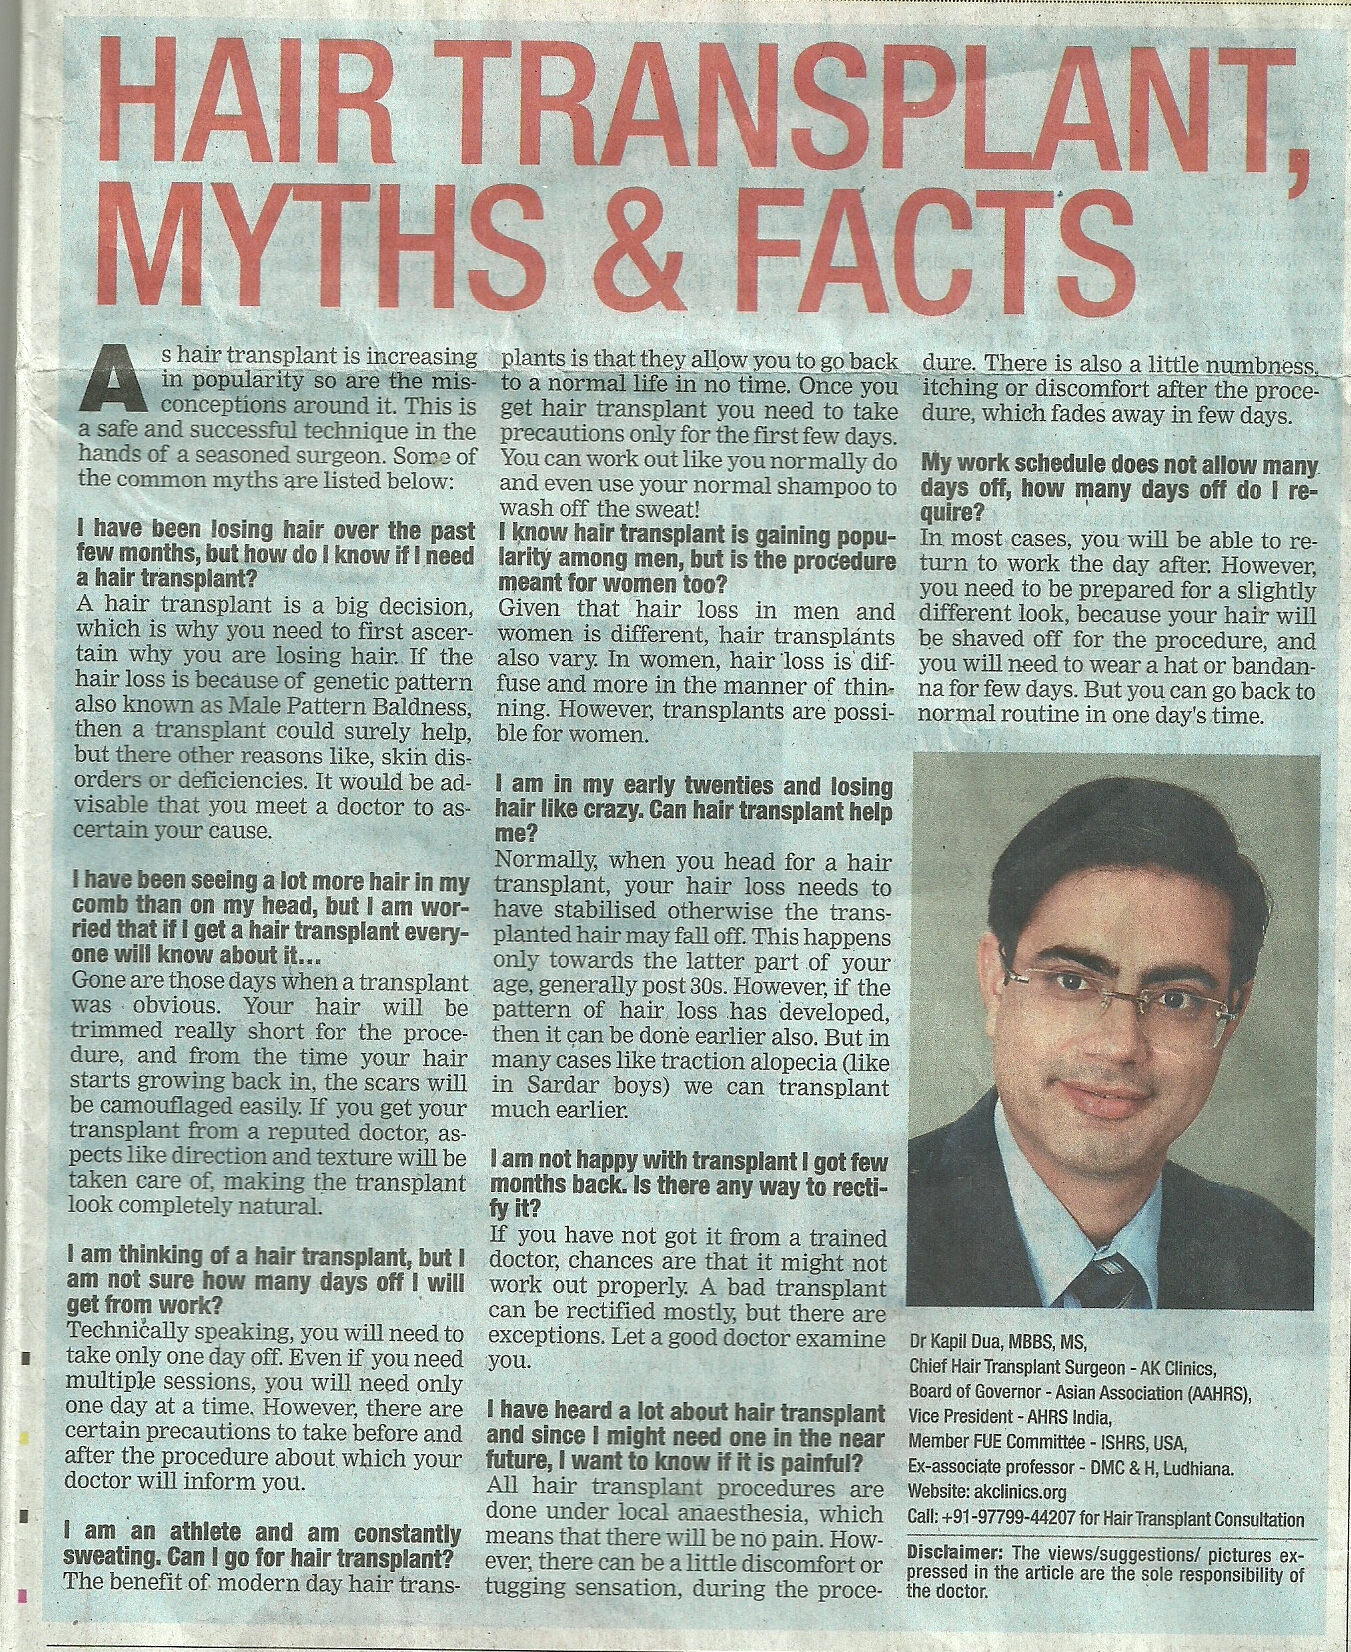 hair transplant myth and facts